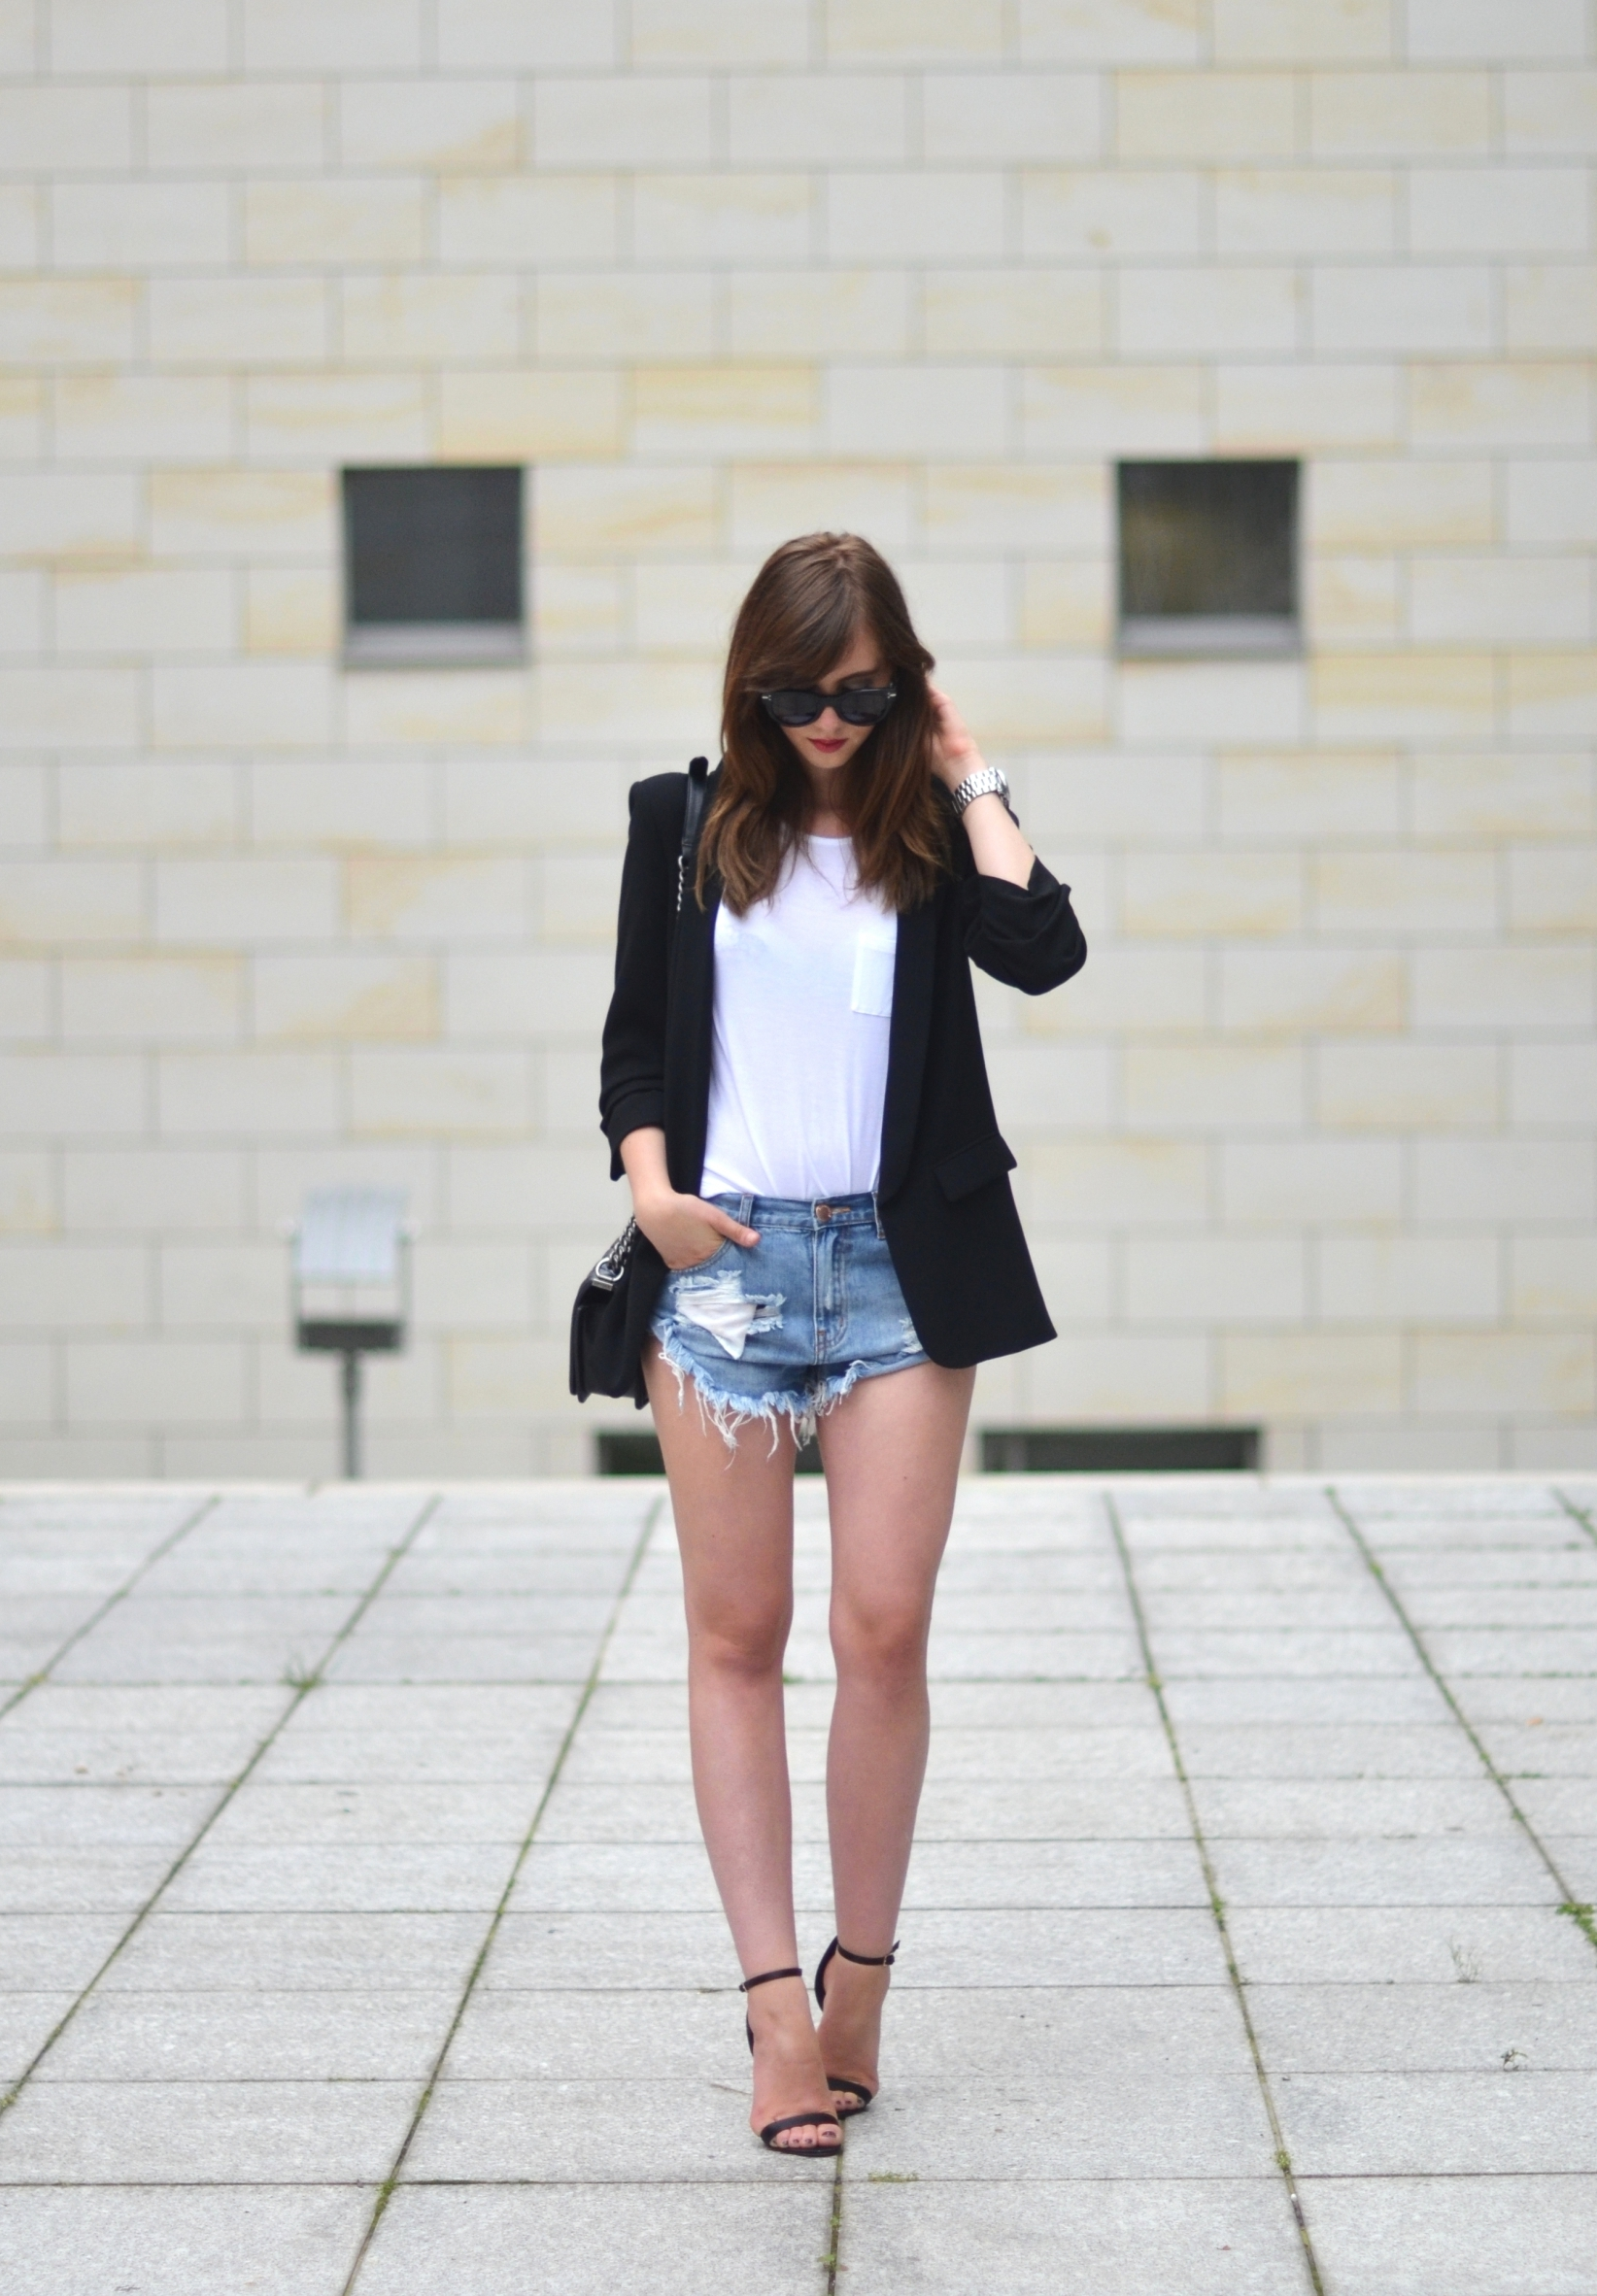 Wear your favourite white tee with a short black blazer, denim shorts and simple sandals. Via Barbora Ondrackova Shirt/Shorts: Topshop, Blazer: Zara, Shoes: Asos, Bag: Chanel. A Summer Outfit Idea